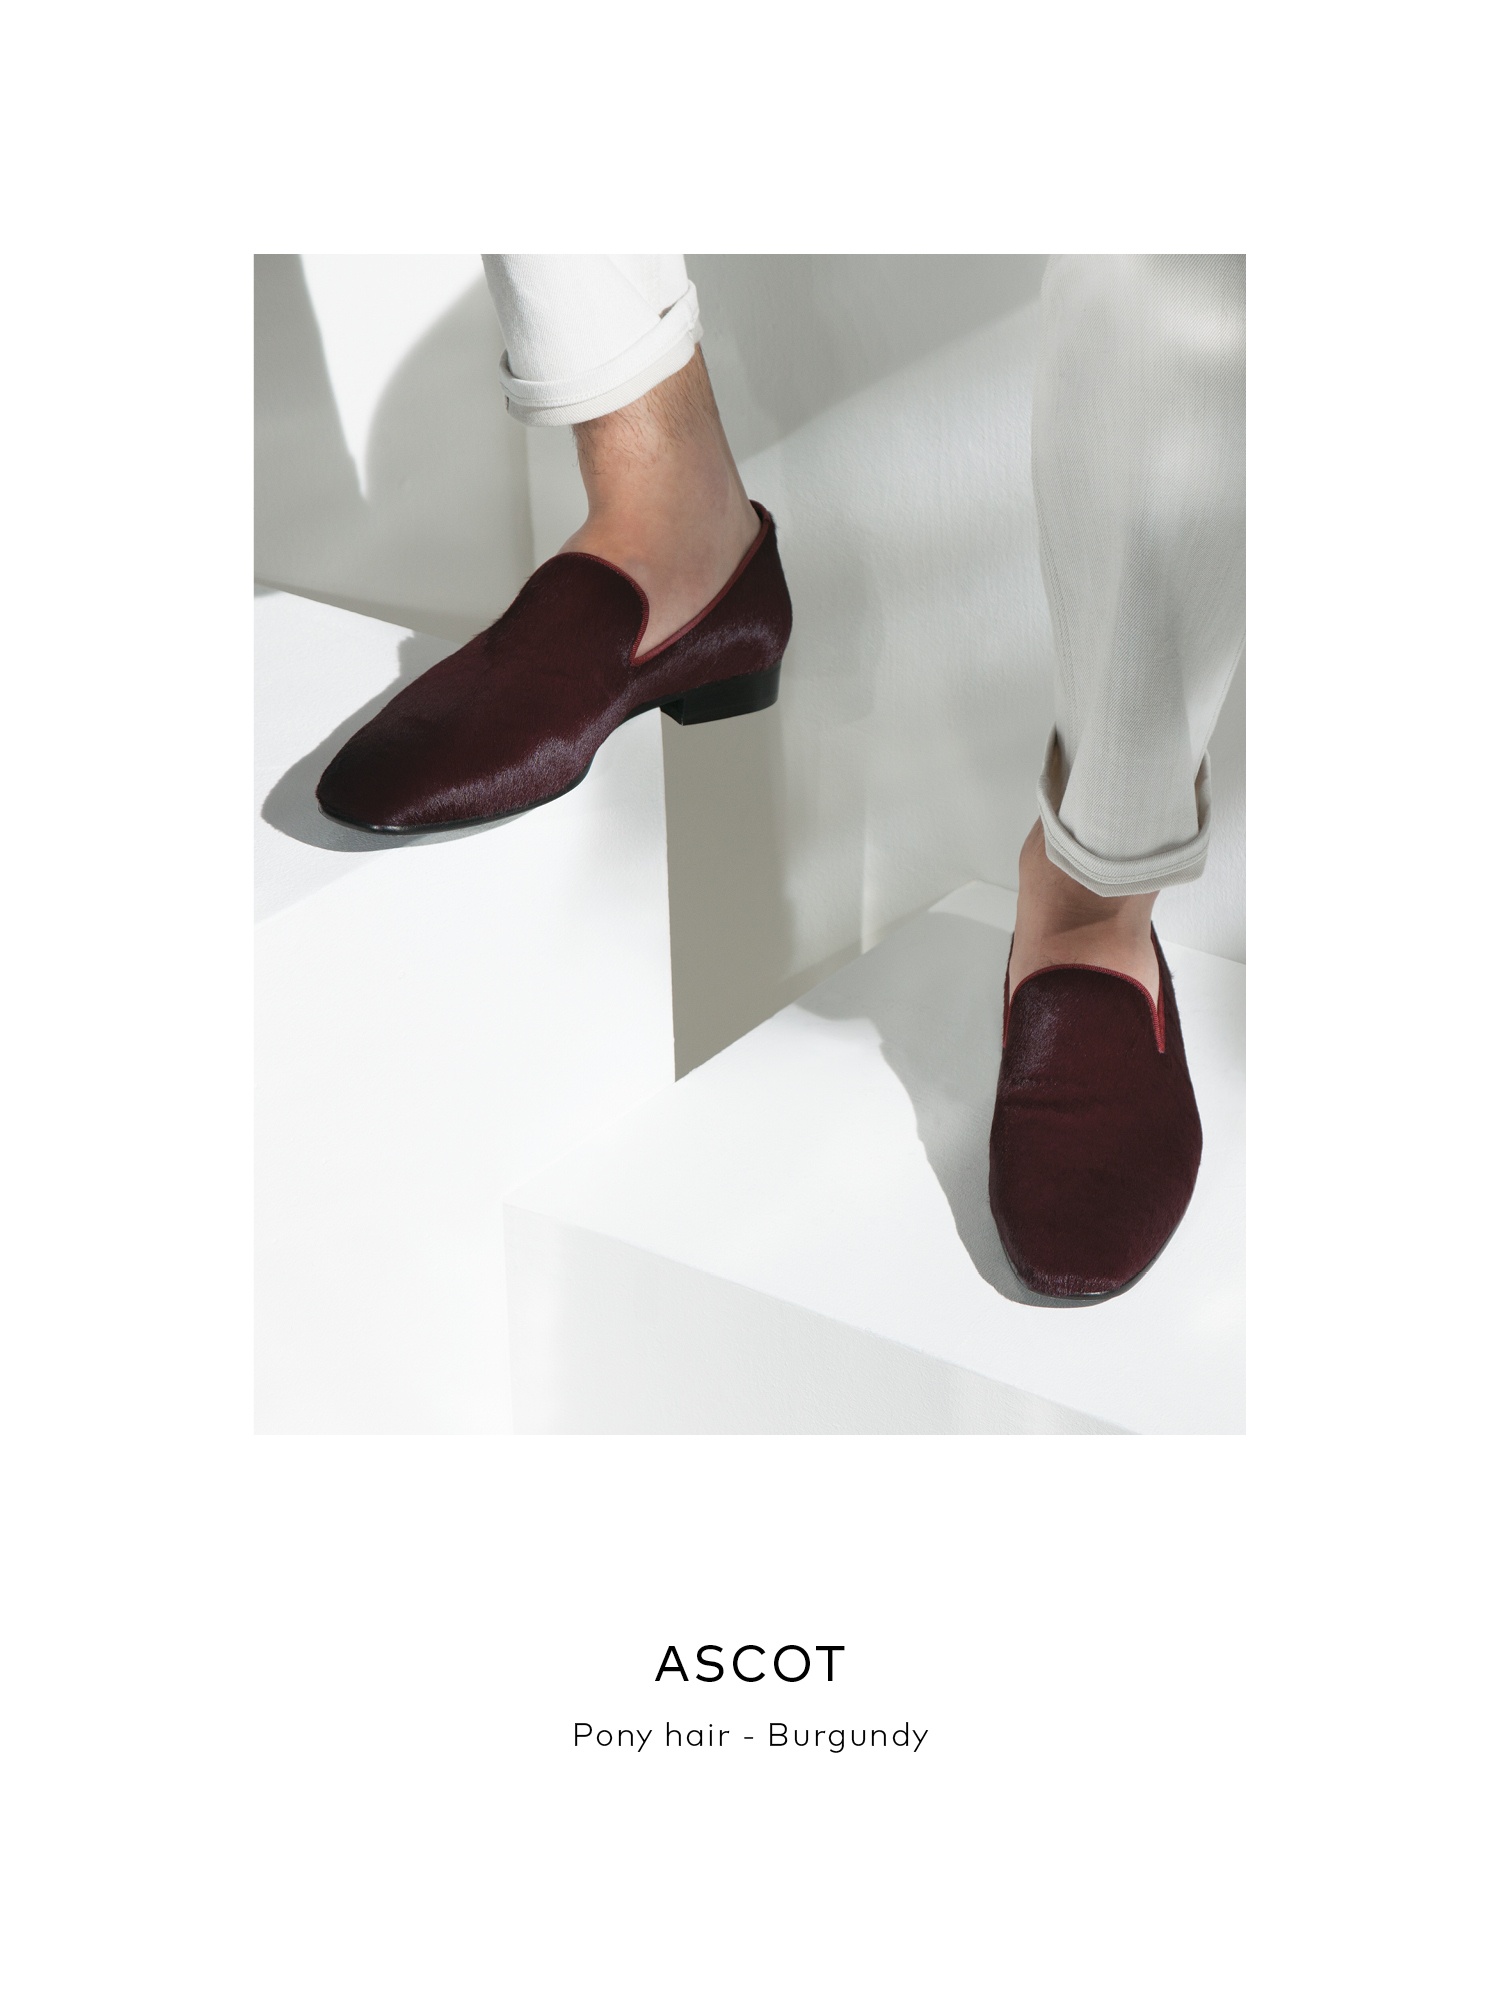 Ascot, Pony Hair - Burgundy